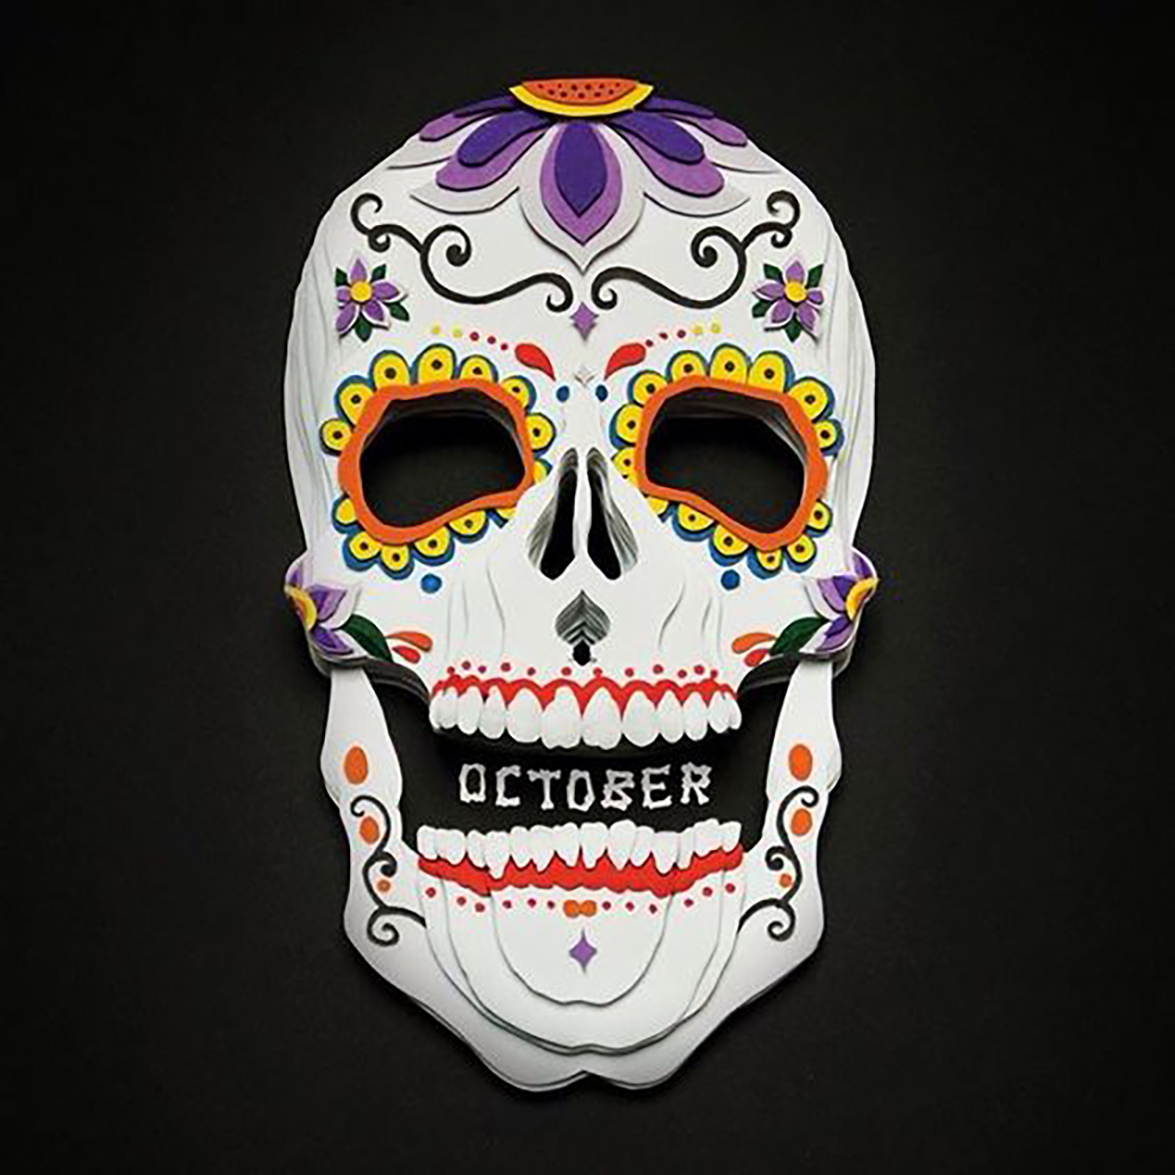 10 Wonderfully Crafted Paper Skulls Just in Time for Halloween - Ceres Lau